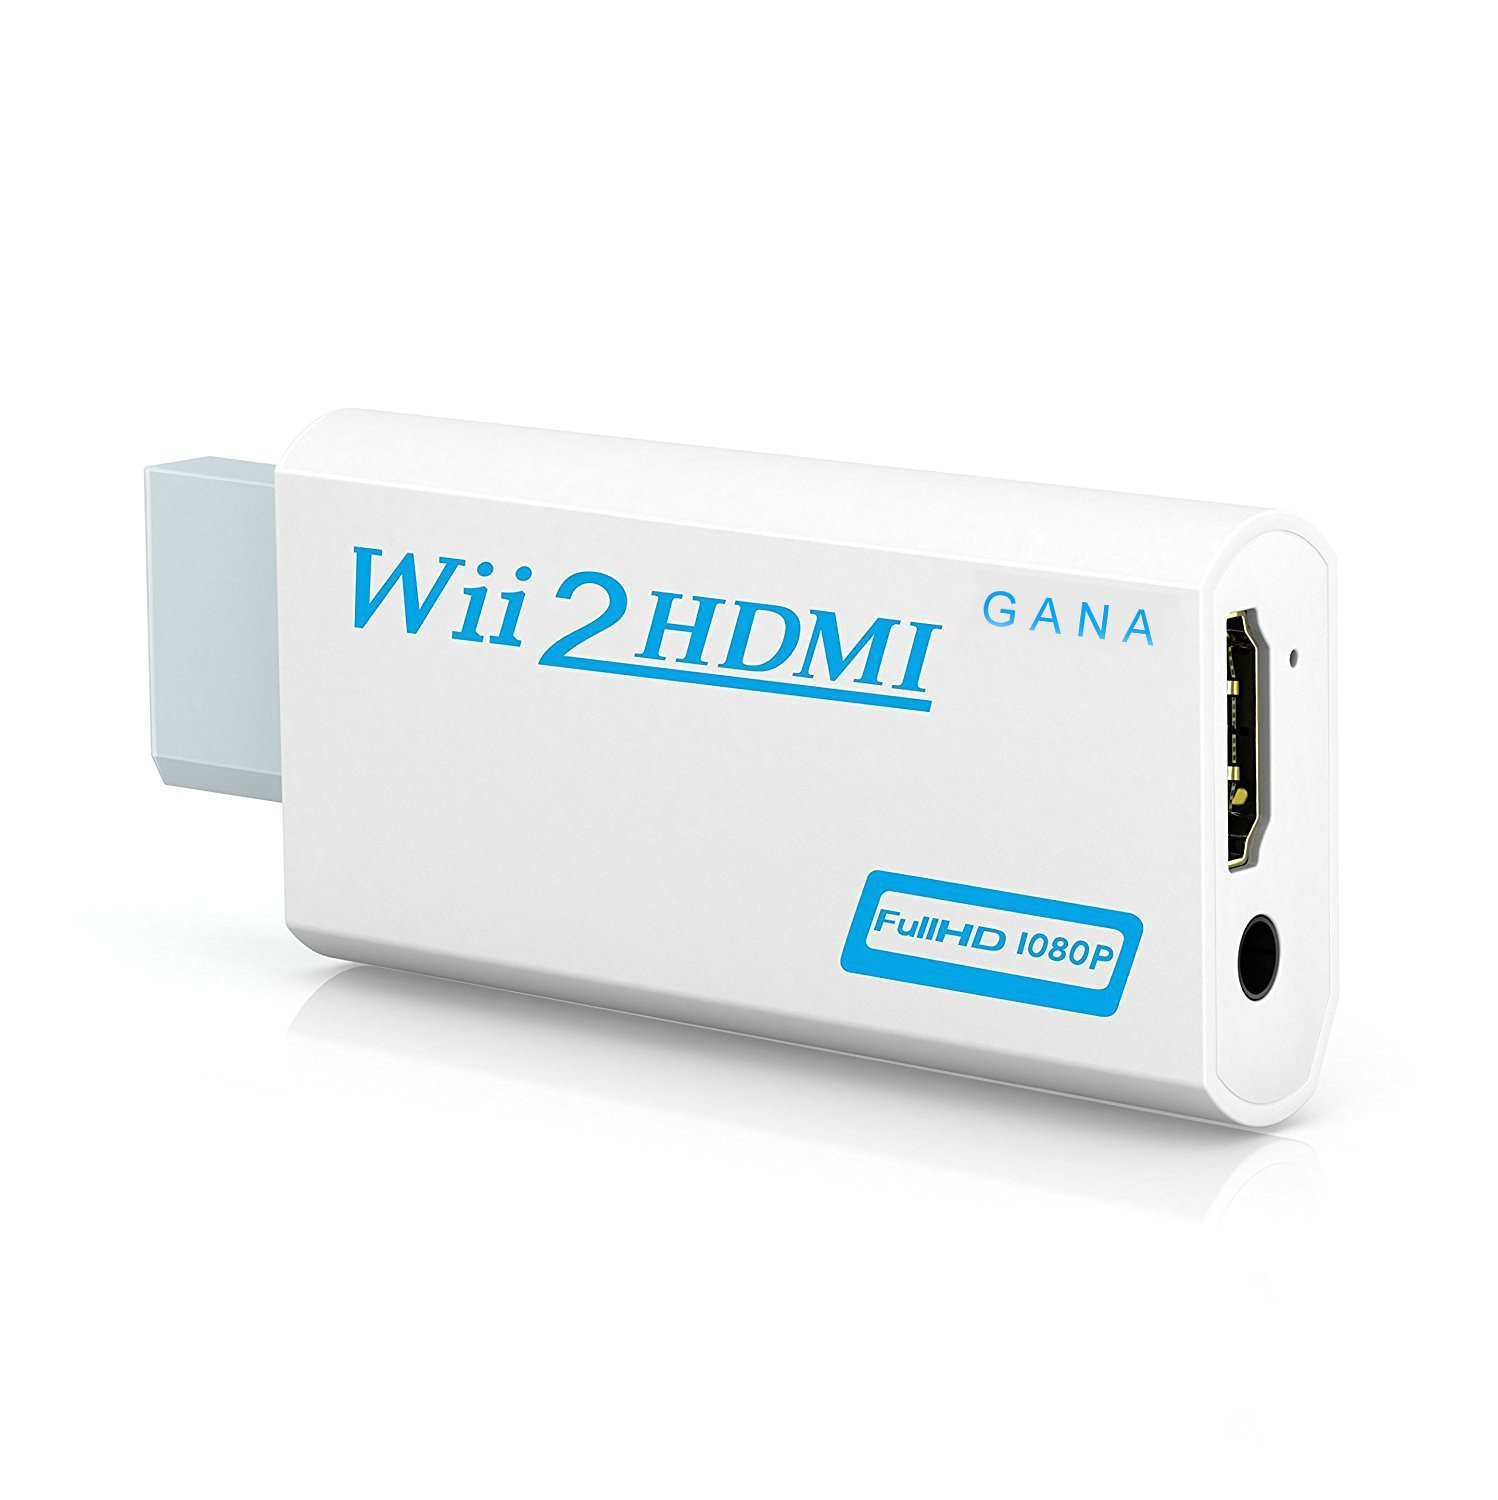 Wii to hdmi Converter, Gana wii to hdmi Adapter, wii to hdmi1080p 720p  Connector Output Video & 3 5mm Audio - Supports All Wii Display Modes